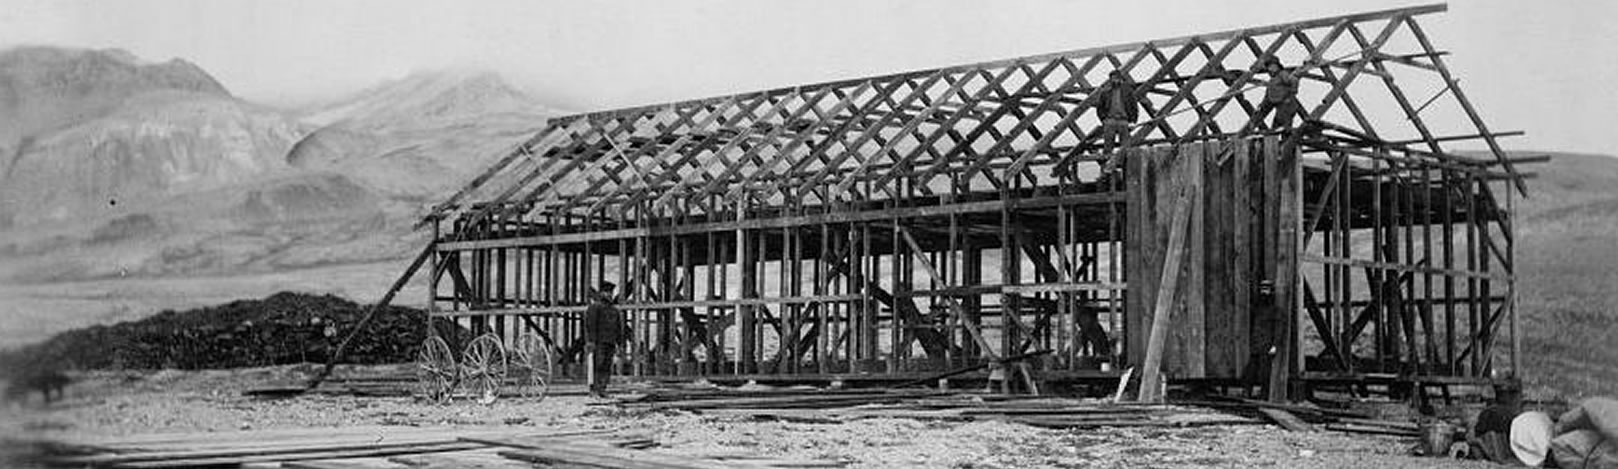 Historic photograph showing the completed house frame of the Lady Franklin Bay Expedition headquarters. In this photograph, the arched roof has been completed. Two figures stand on the roof frame adding wall boards.